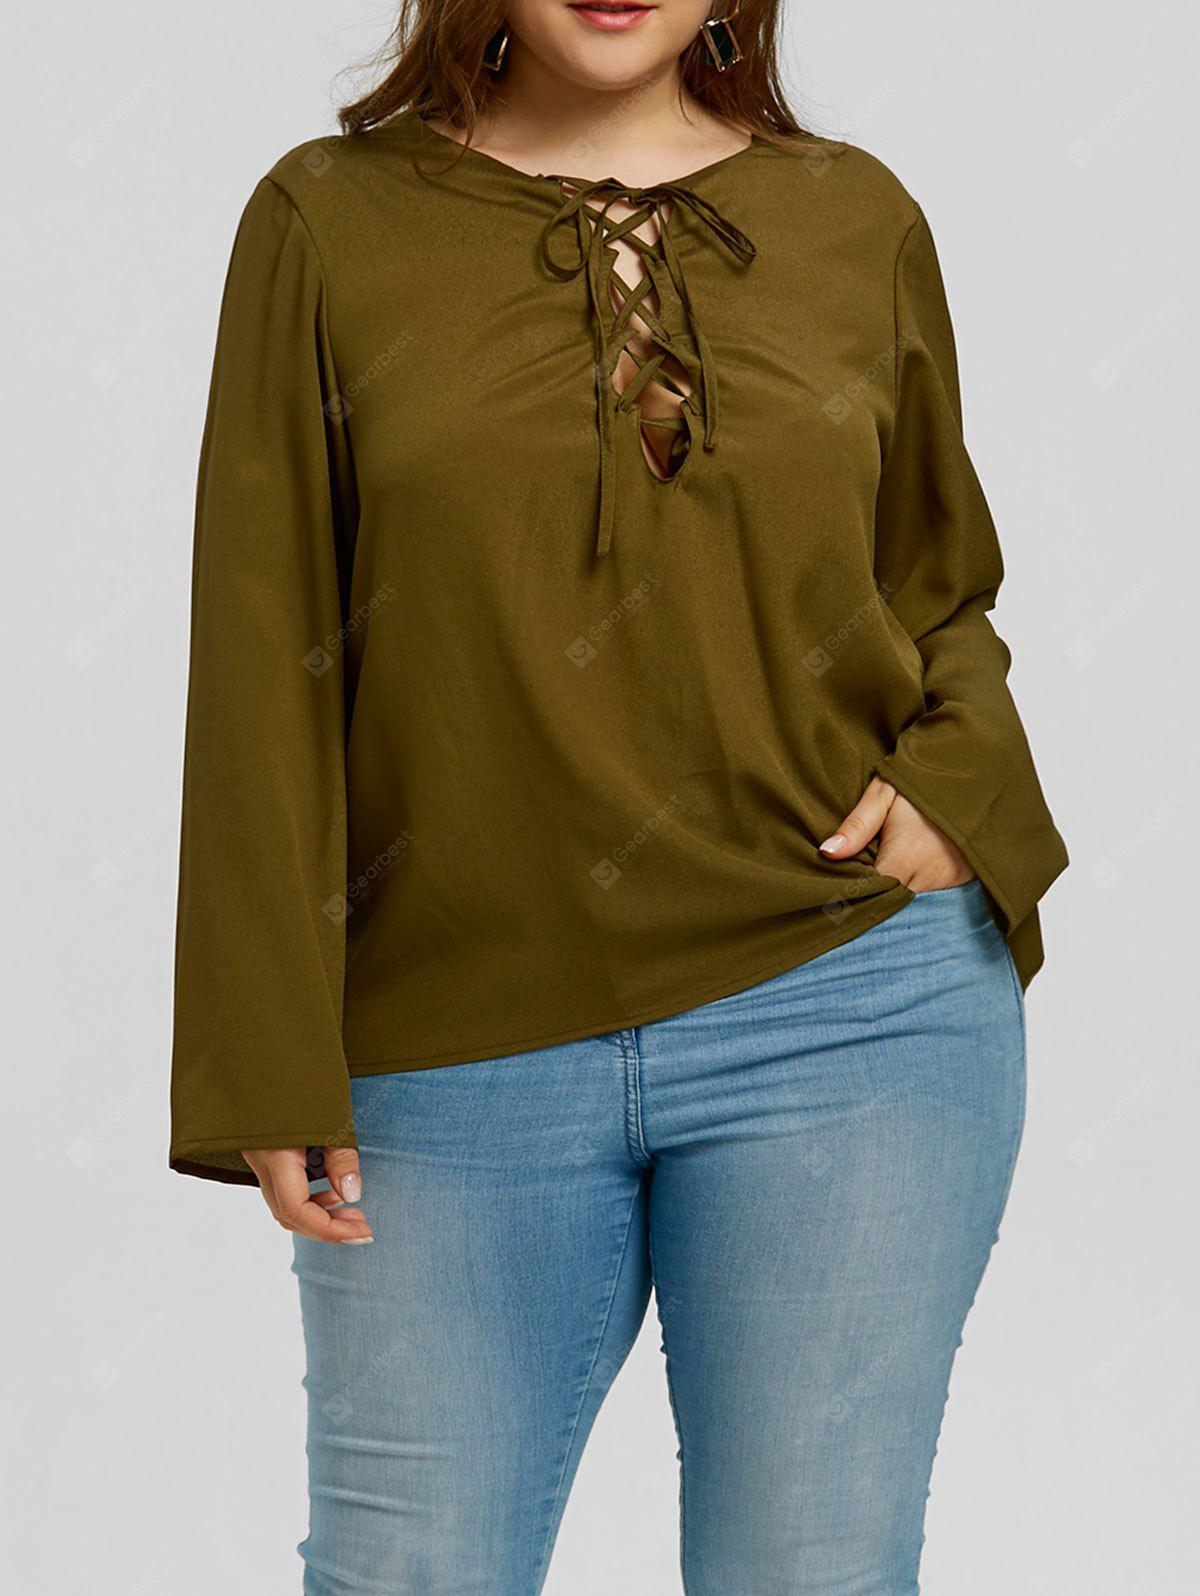 Plus Size Lattice Low Cut Blouse